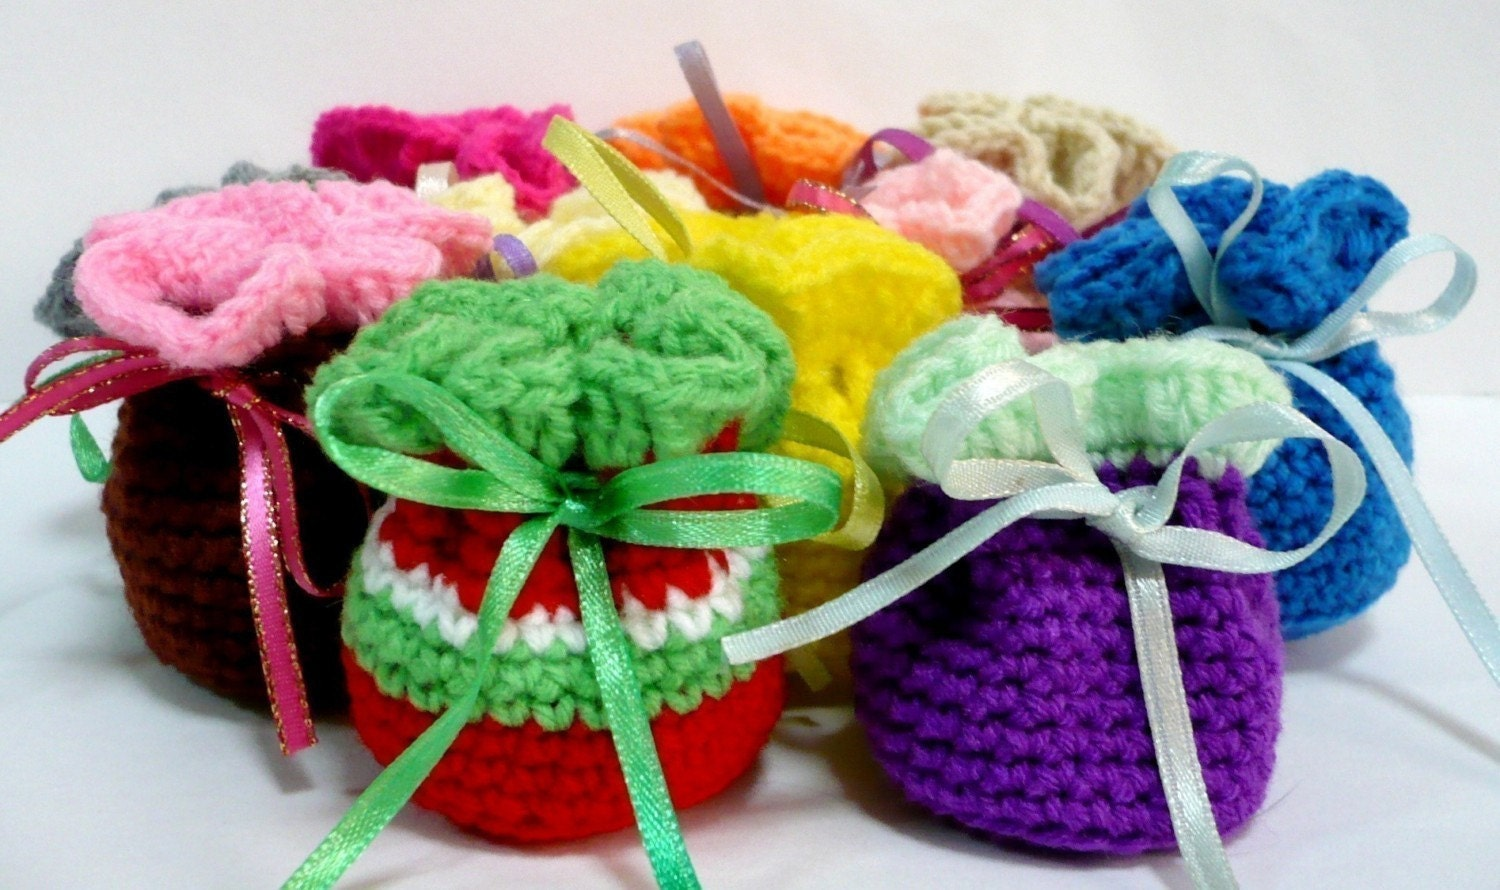 Crochet Small Bag : Drawstring Pouch Crochet Pattern Small Bag Crochet by melbangel